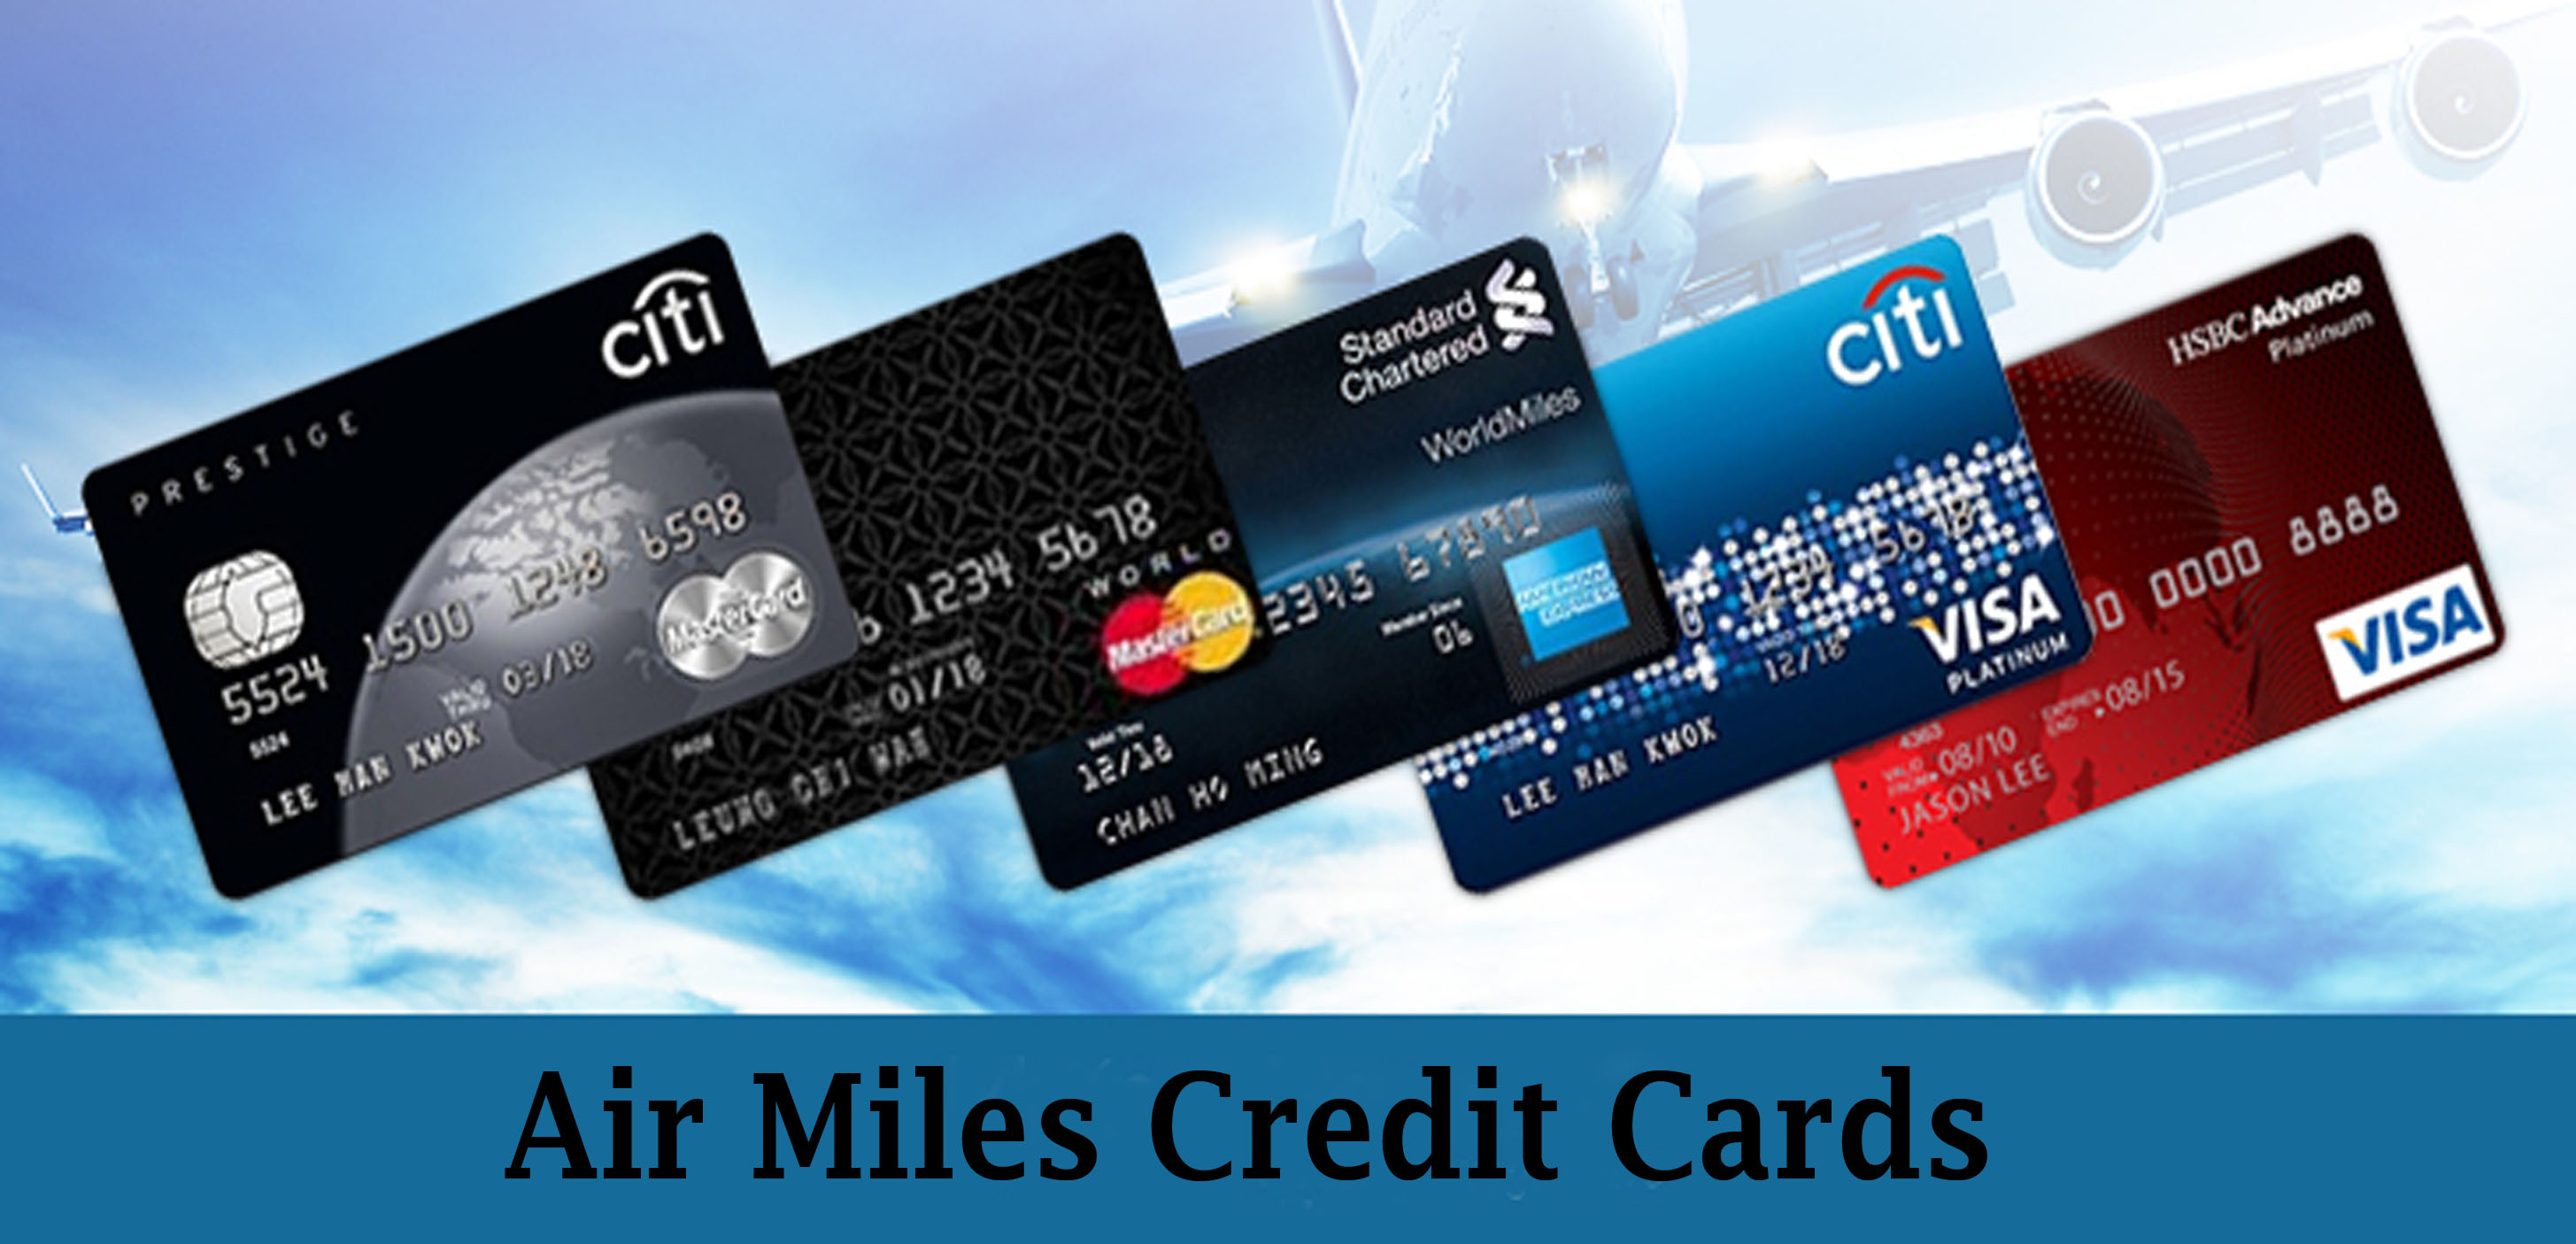 Air Miles Credit Cards - Features, Rewards and Benefits